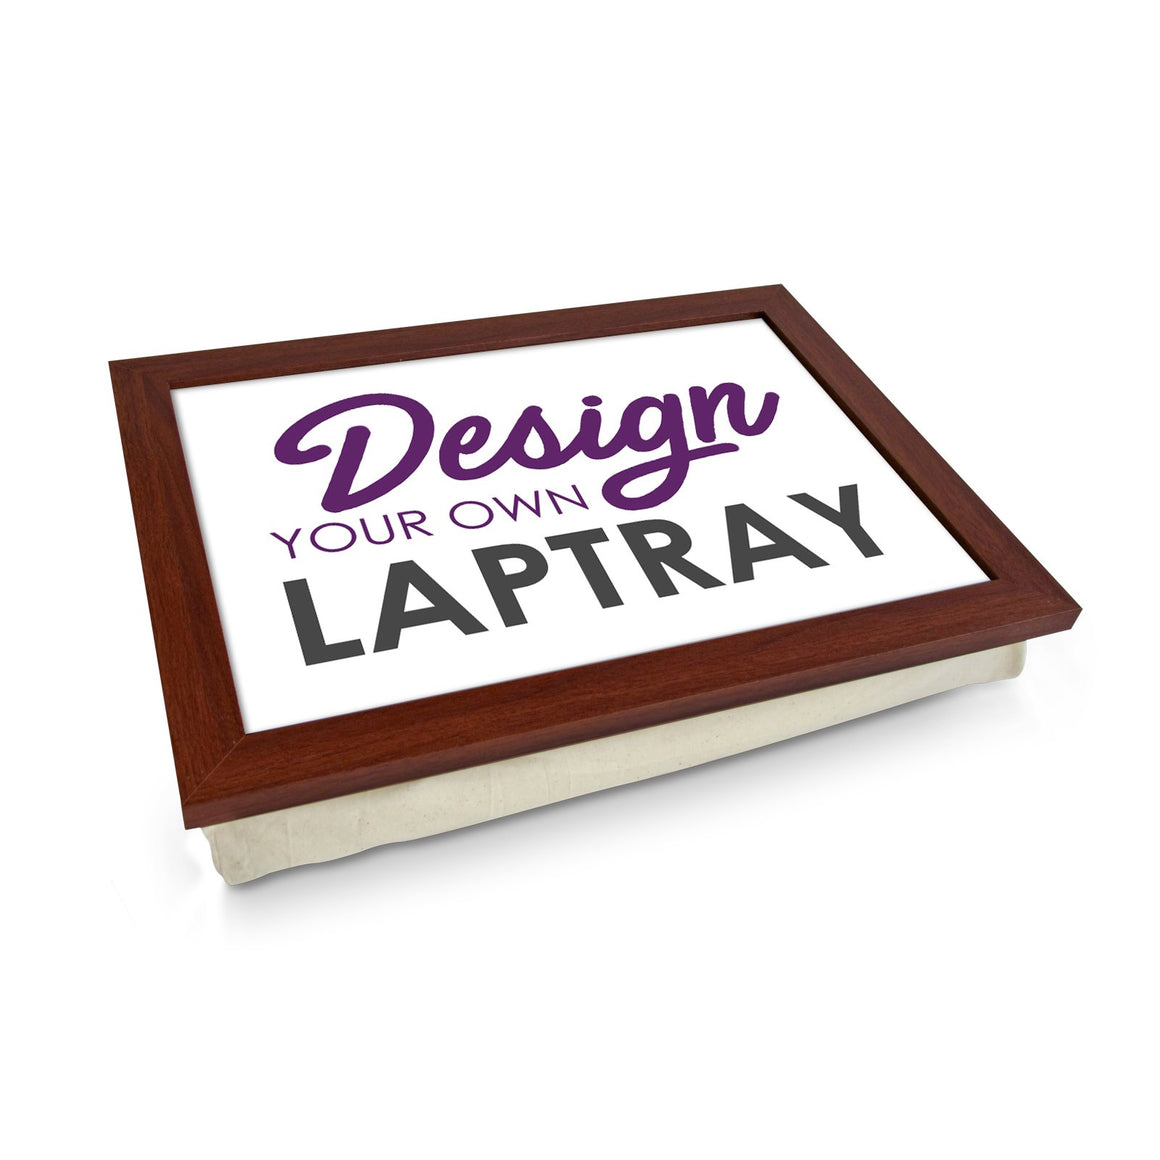 Design Your Own Lap Tray